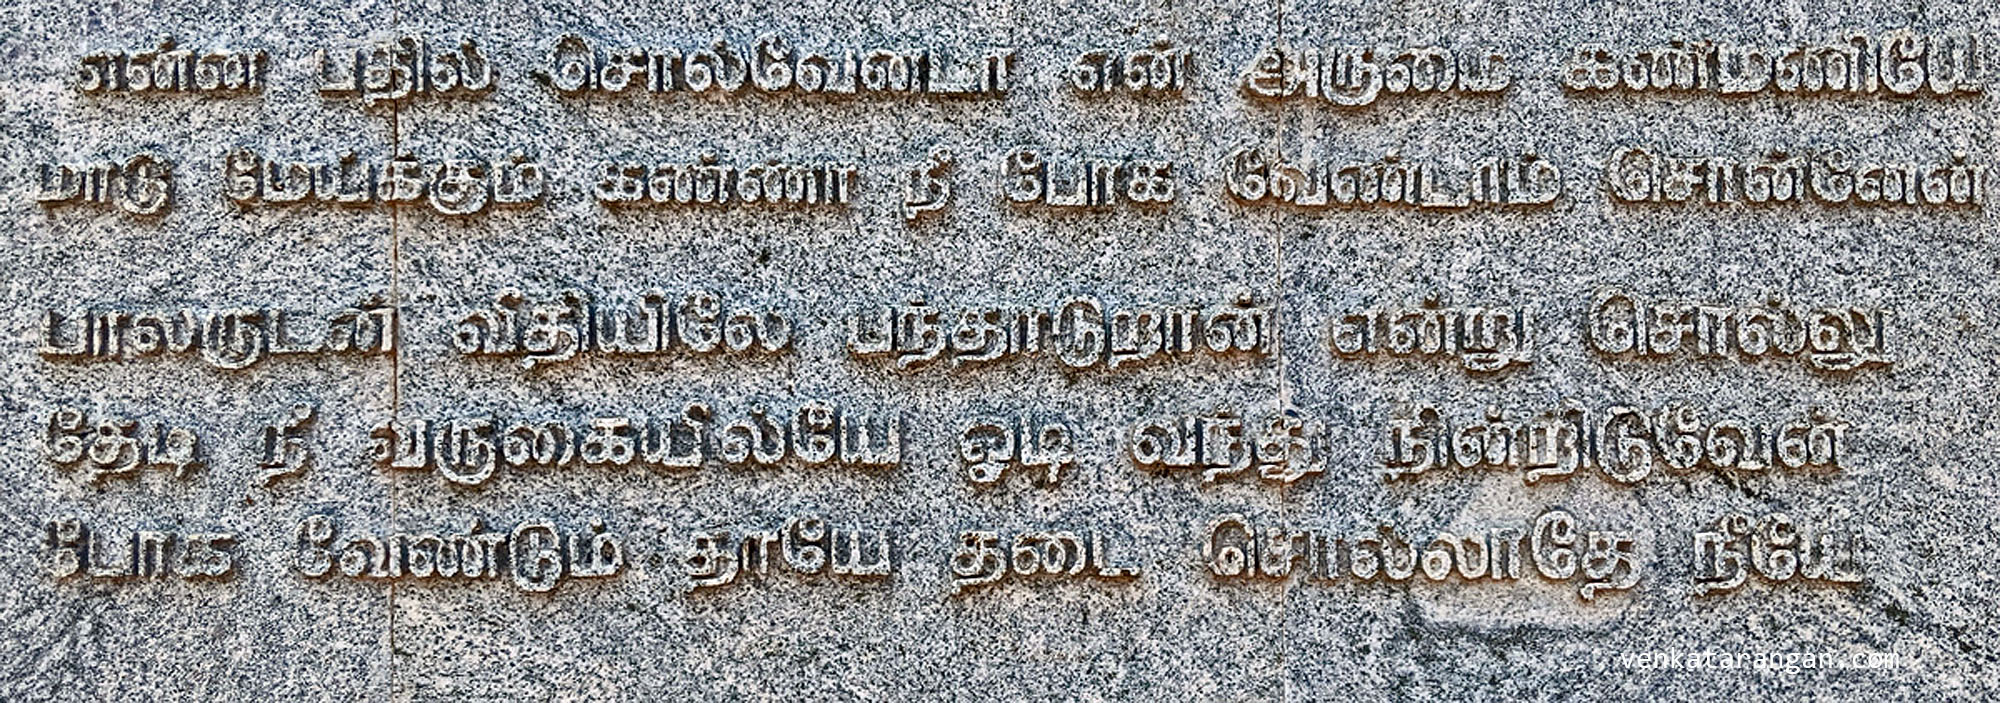 A popular song by Oothukkadu Venkata Kavi (1700-1765) who was one of the pioneering composers in Indian classical Carnatic music.